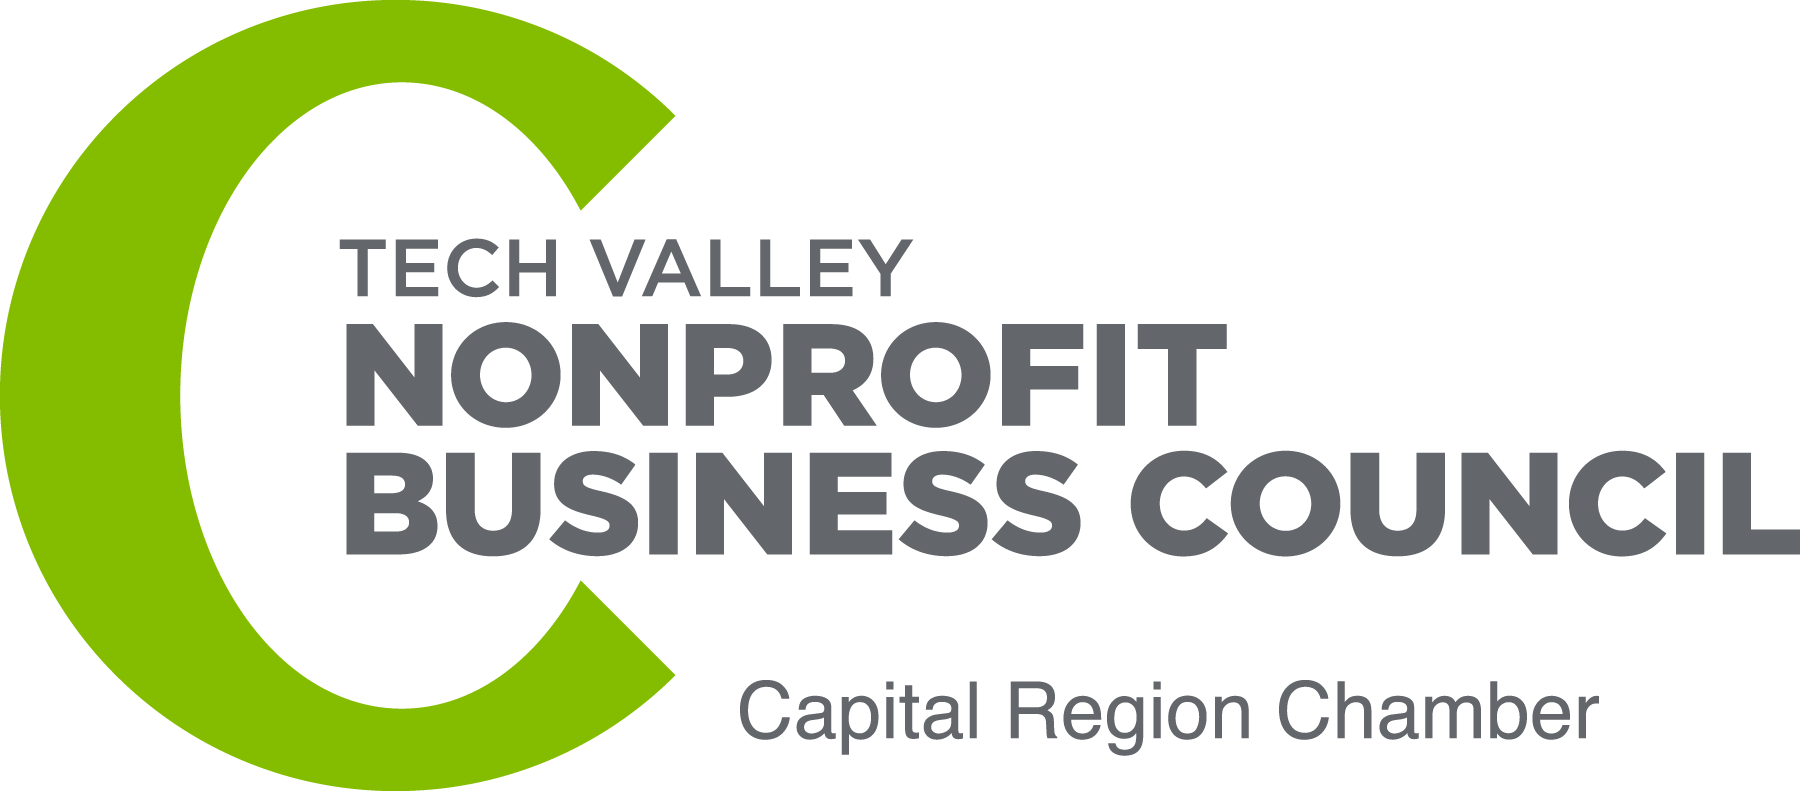 Tech Valley Nonprofit Business Council | Capital Region Chamber of ...